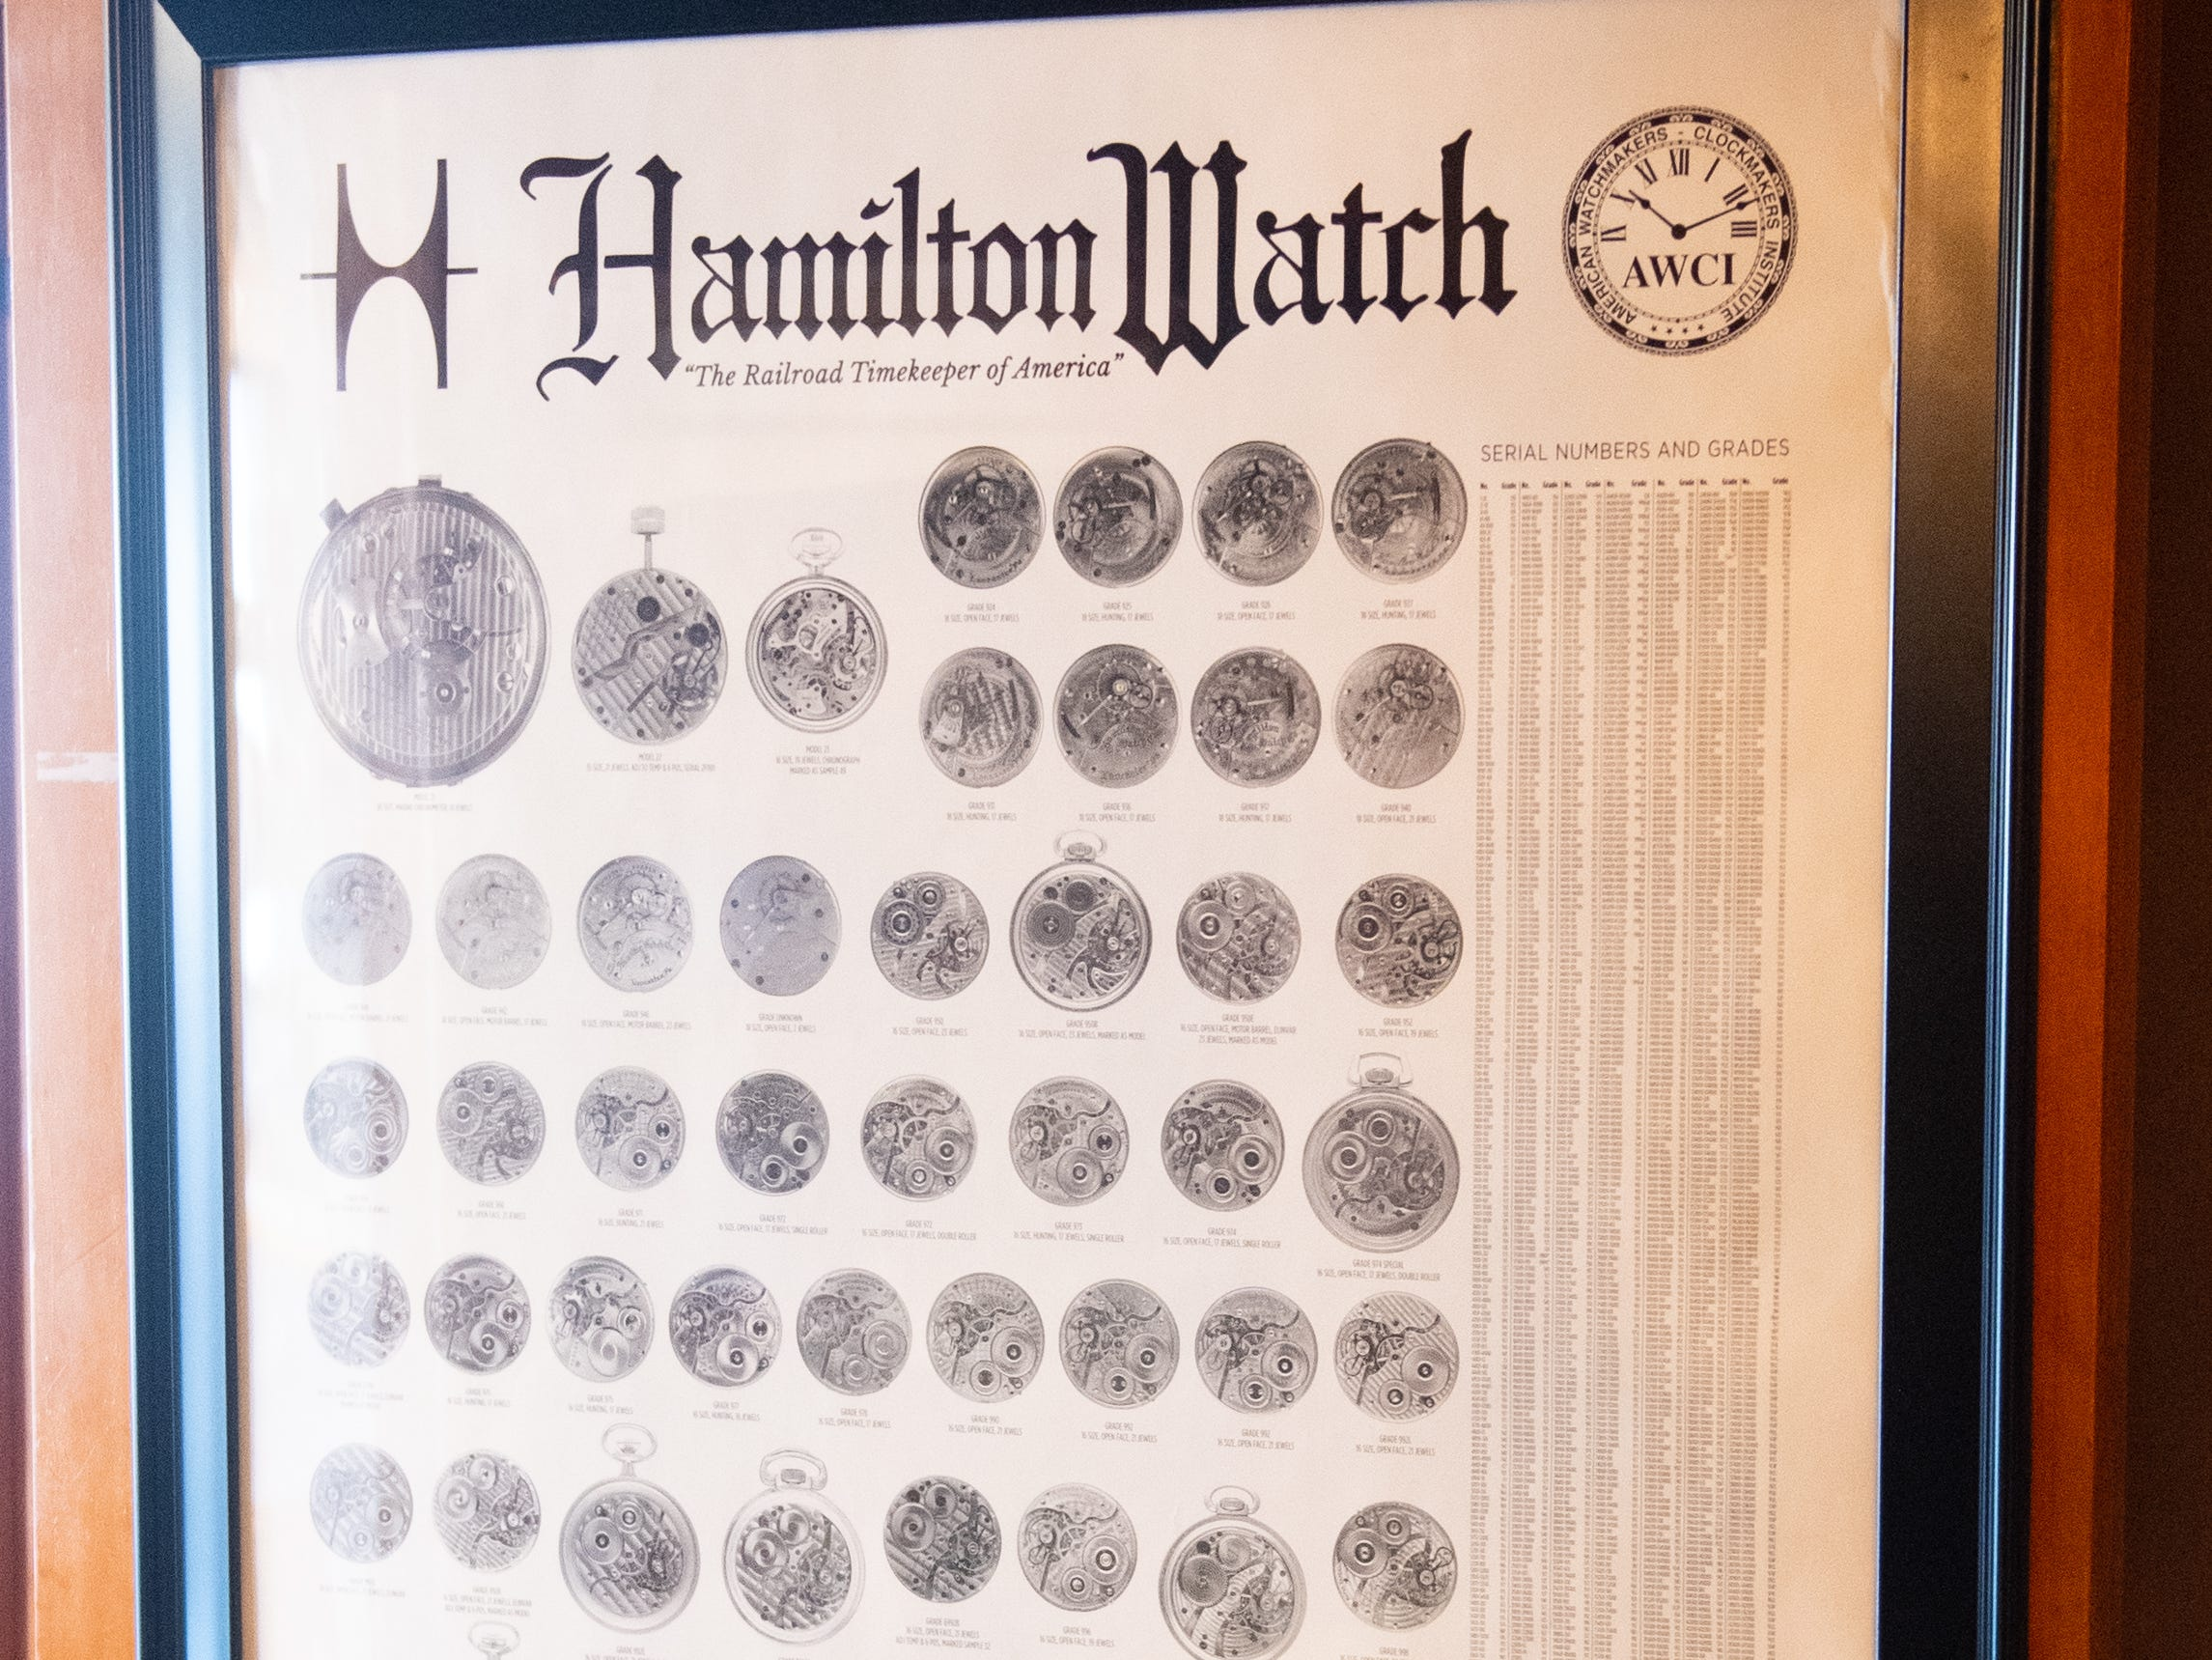 Ronald Botterbusch's favorite watch company is Hamilton. He framed a poster with every different type of watch they've ever made, January 30, 2019.